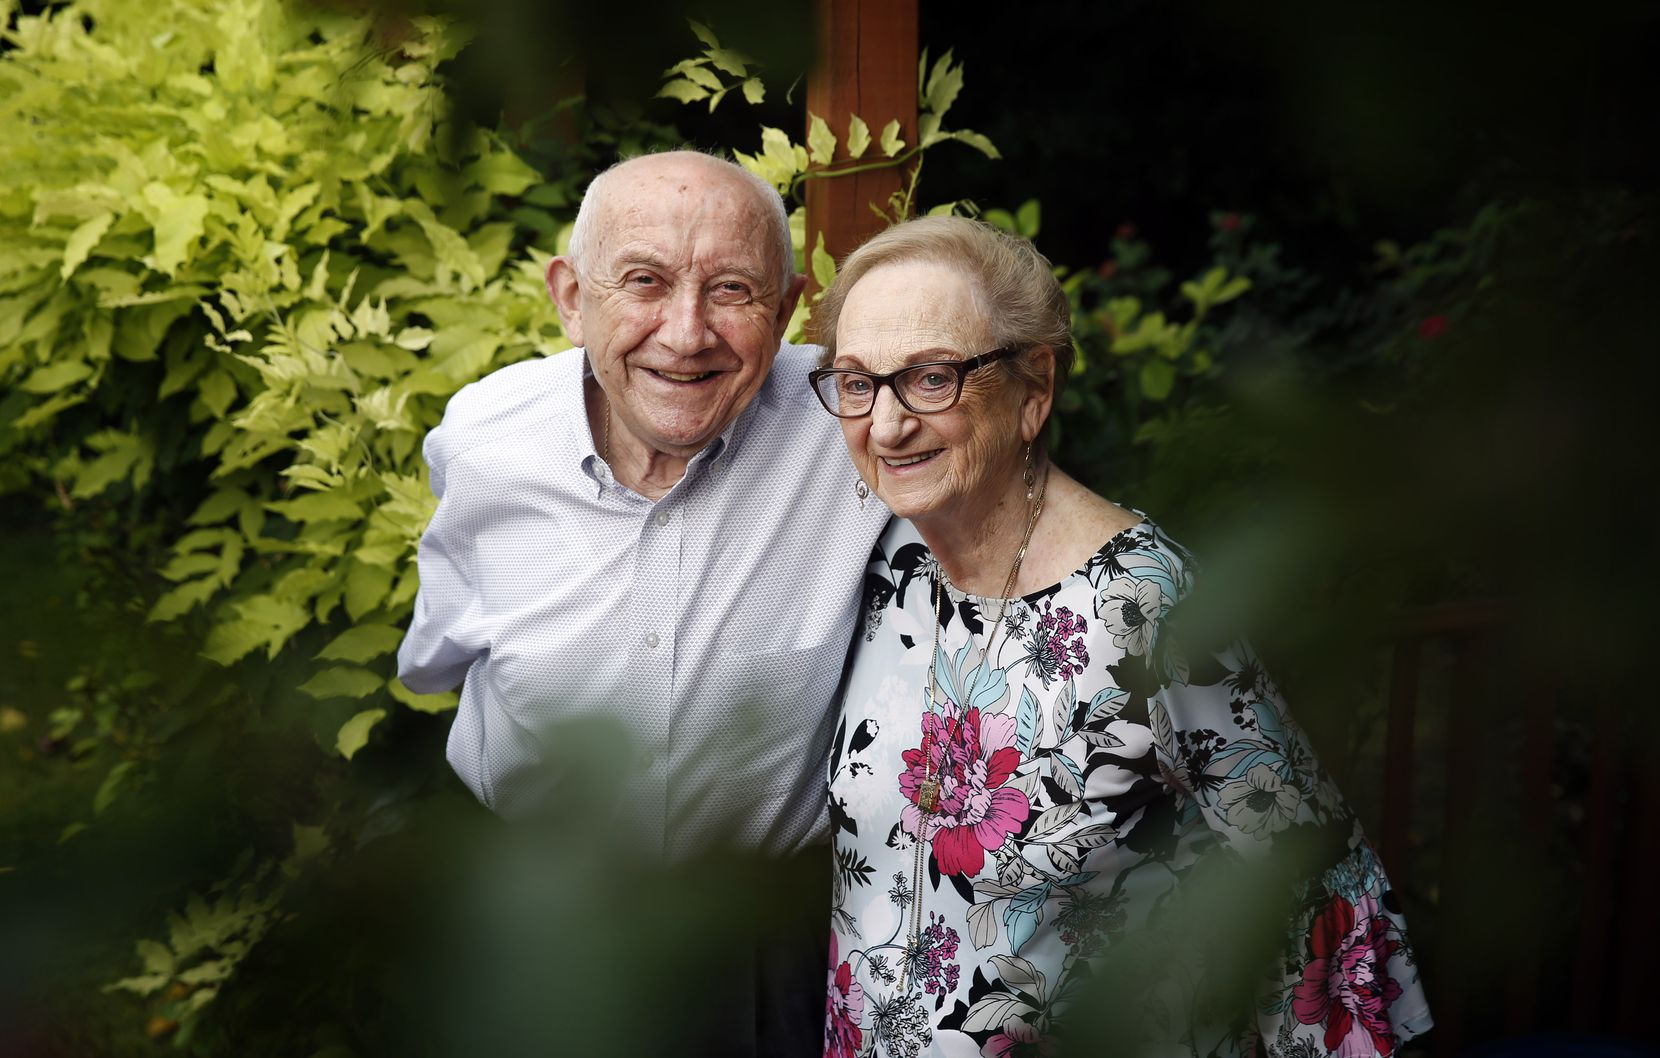 Holocaust survivor Max Glauben and his wife Frieda are photographed outside their Dallas home, Tuesday, August 4, 2020. (Tom Fox/The Dallas Morning News)